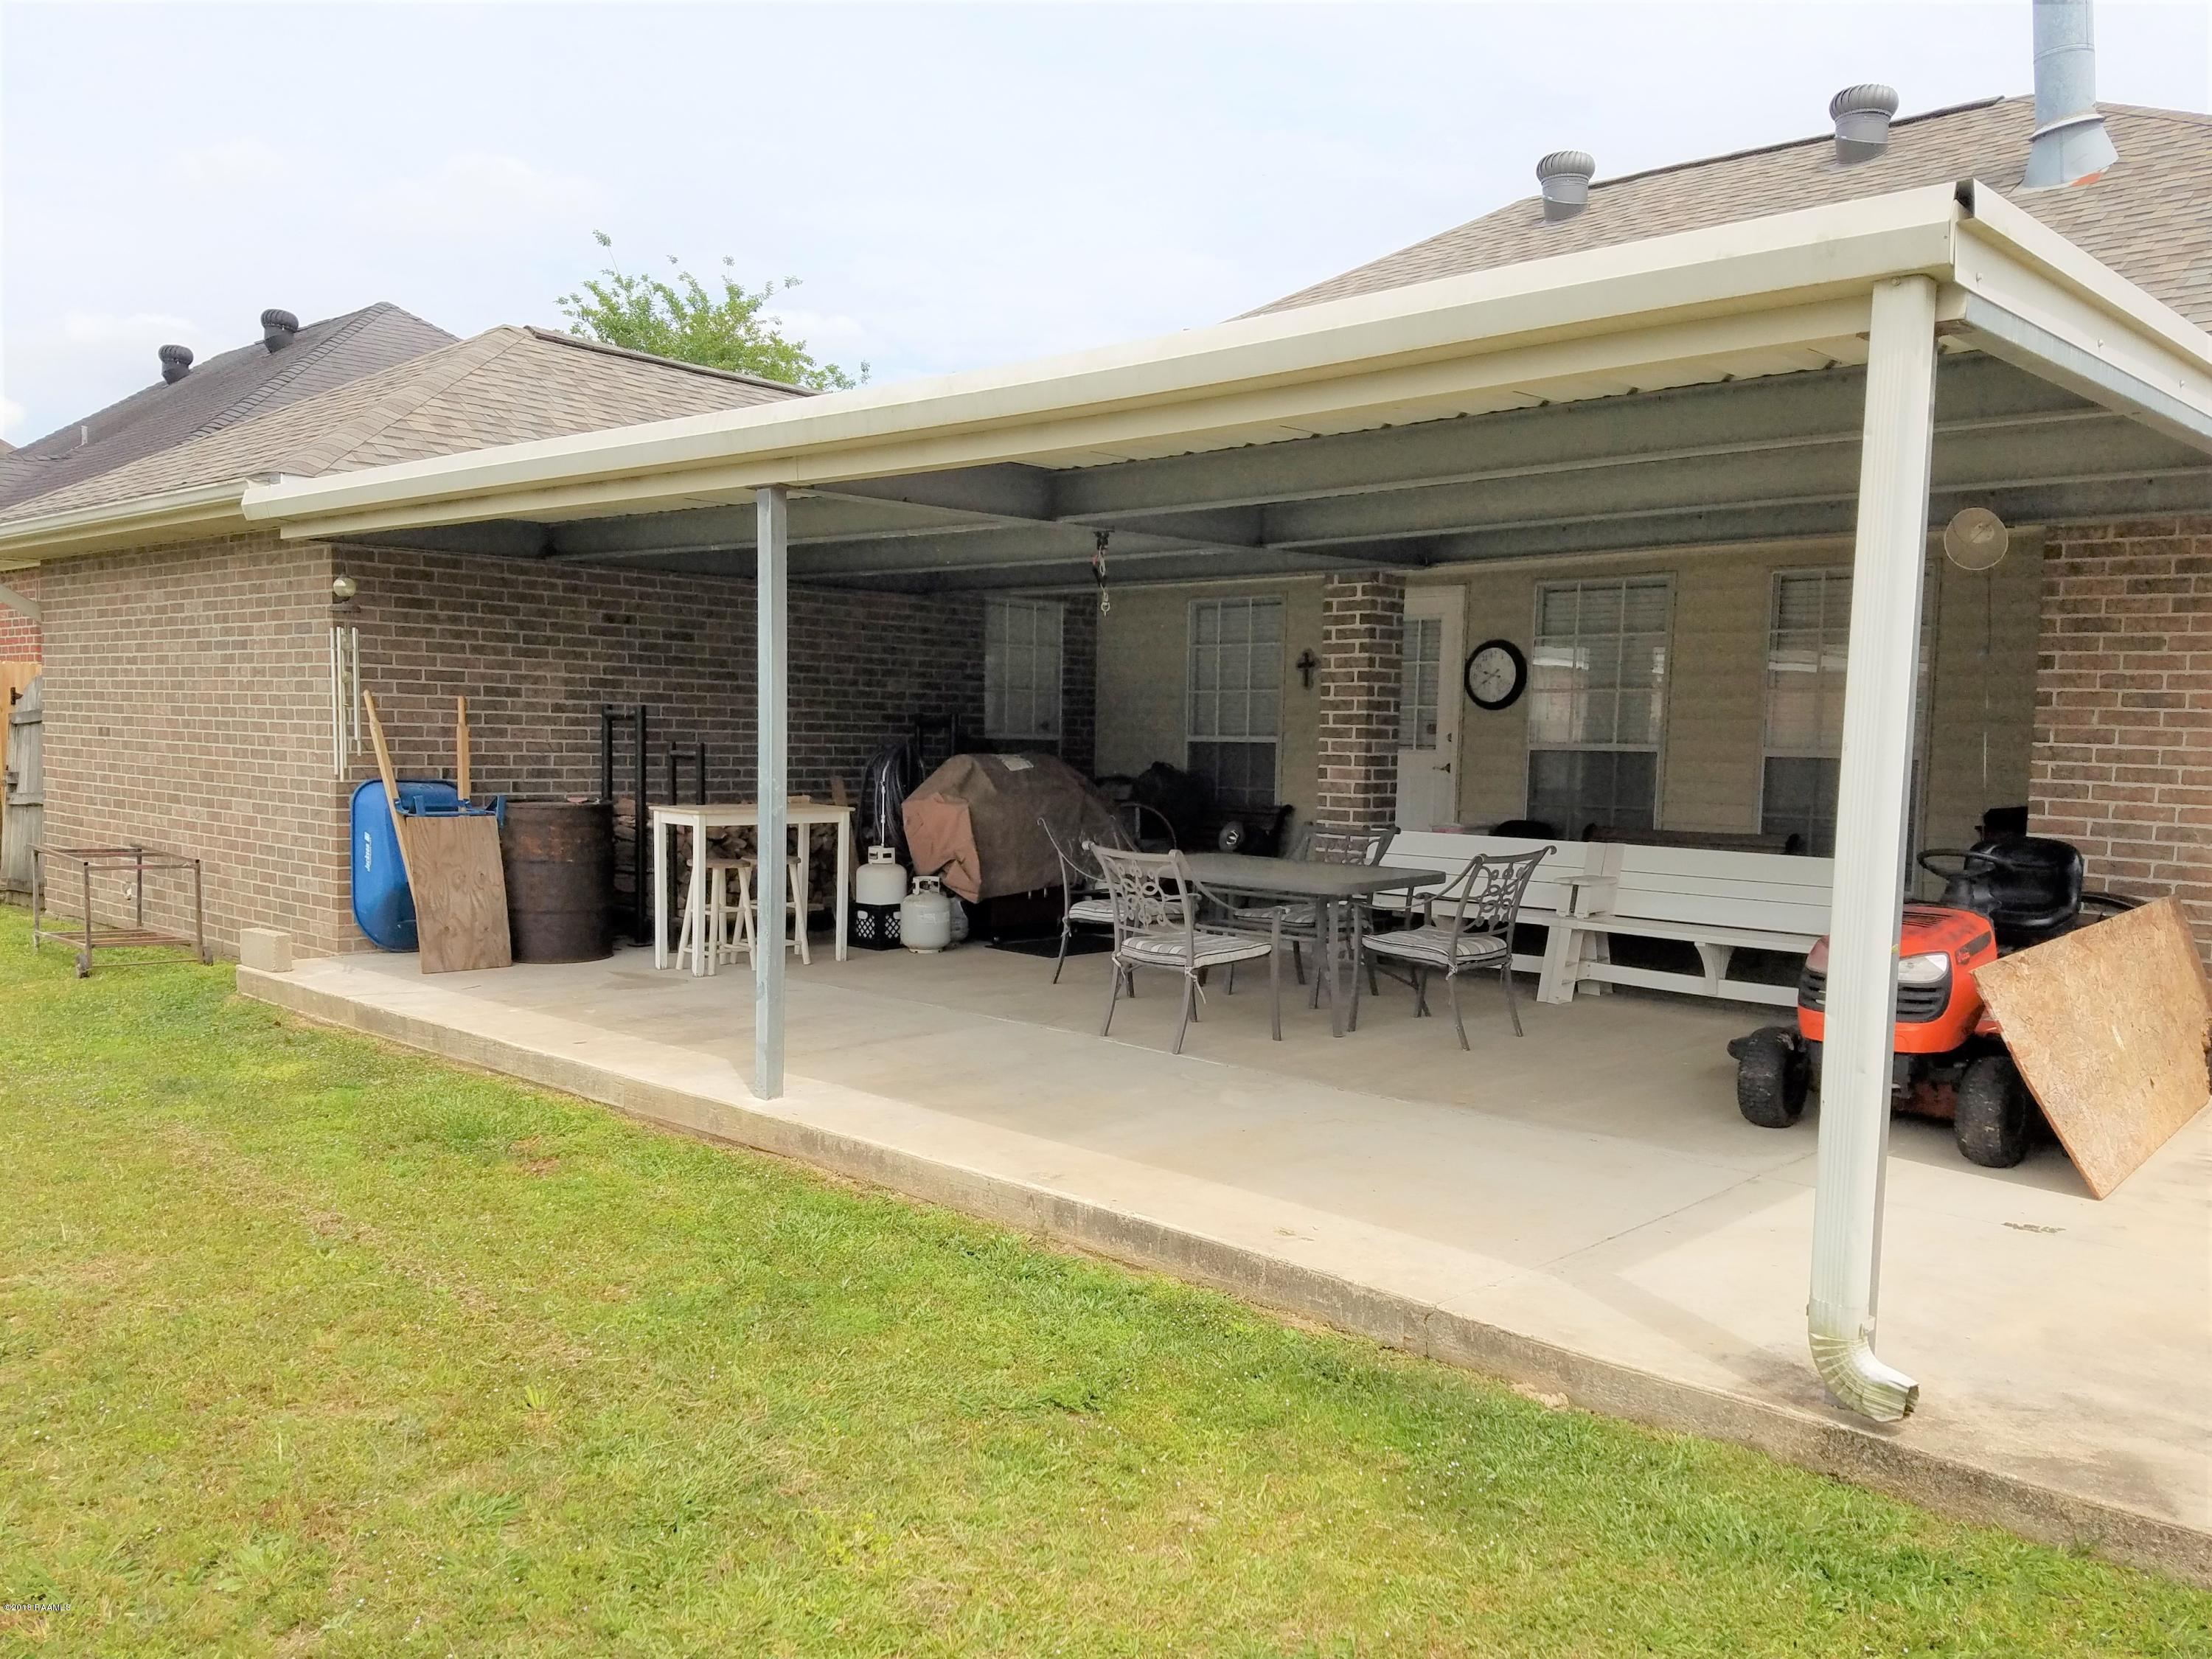 106 Windrush Lane, Lafayette, LA 70506 Photo #13